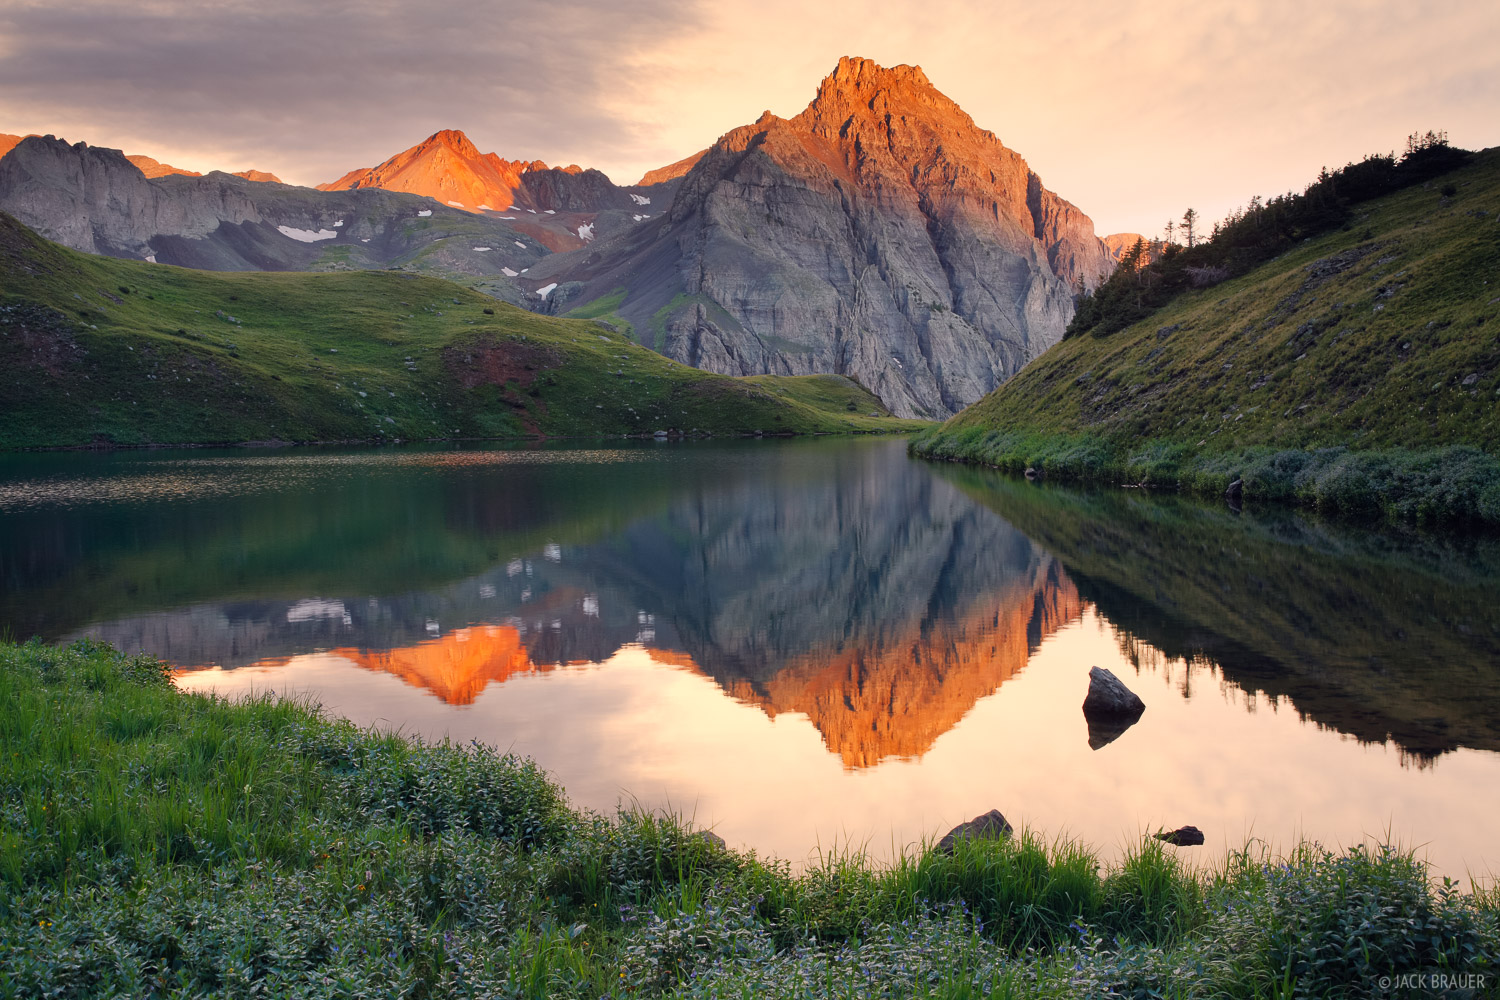 Sunrise alpenglow reflection of a rugged peak in the Sneffels Range, as seen from the middle Blue Lake.